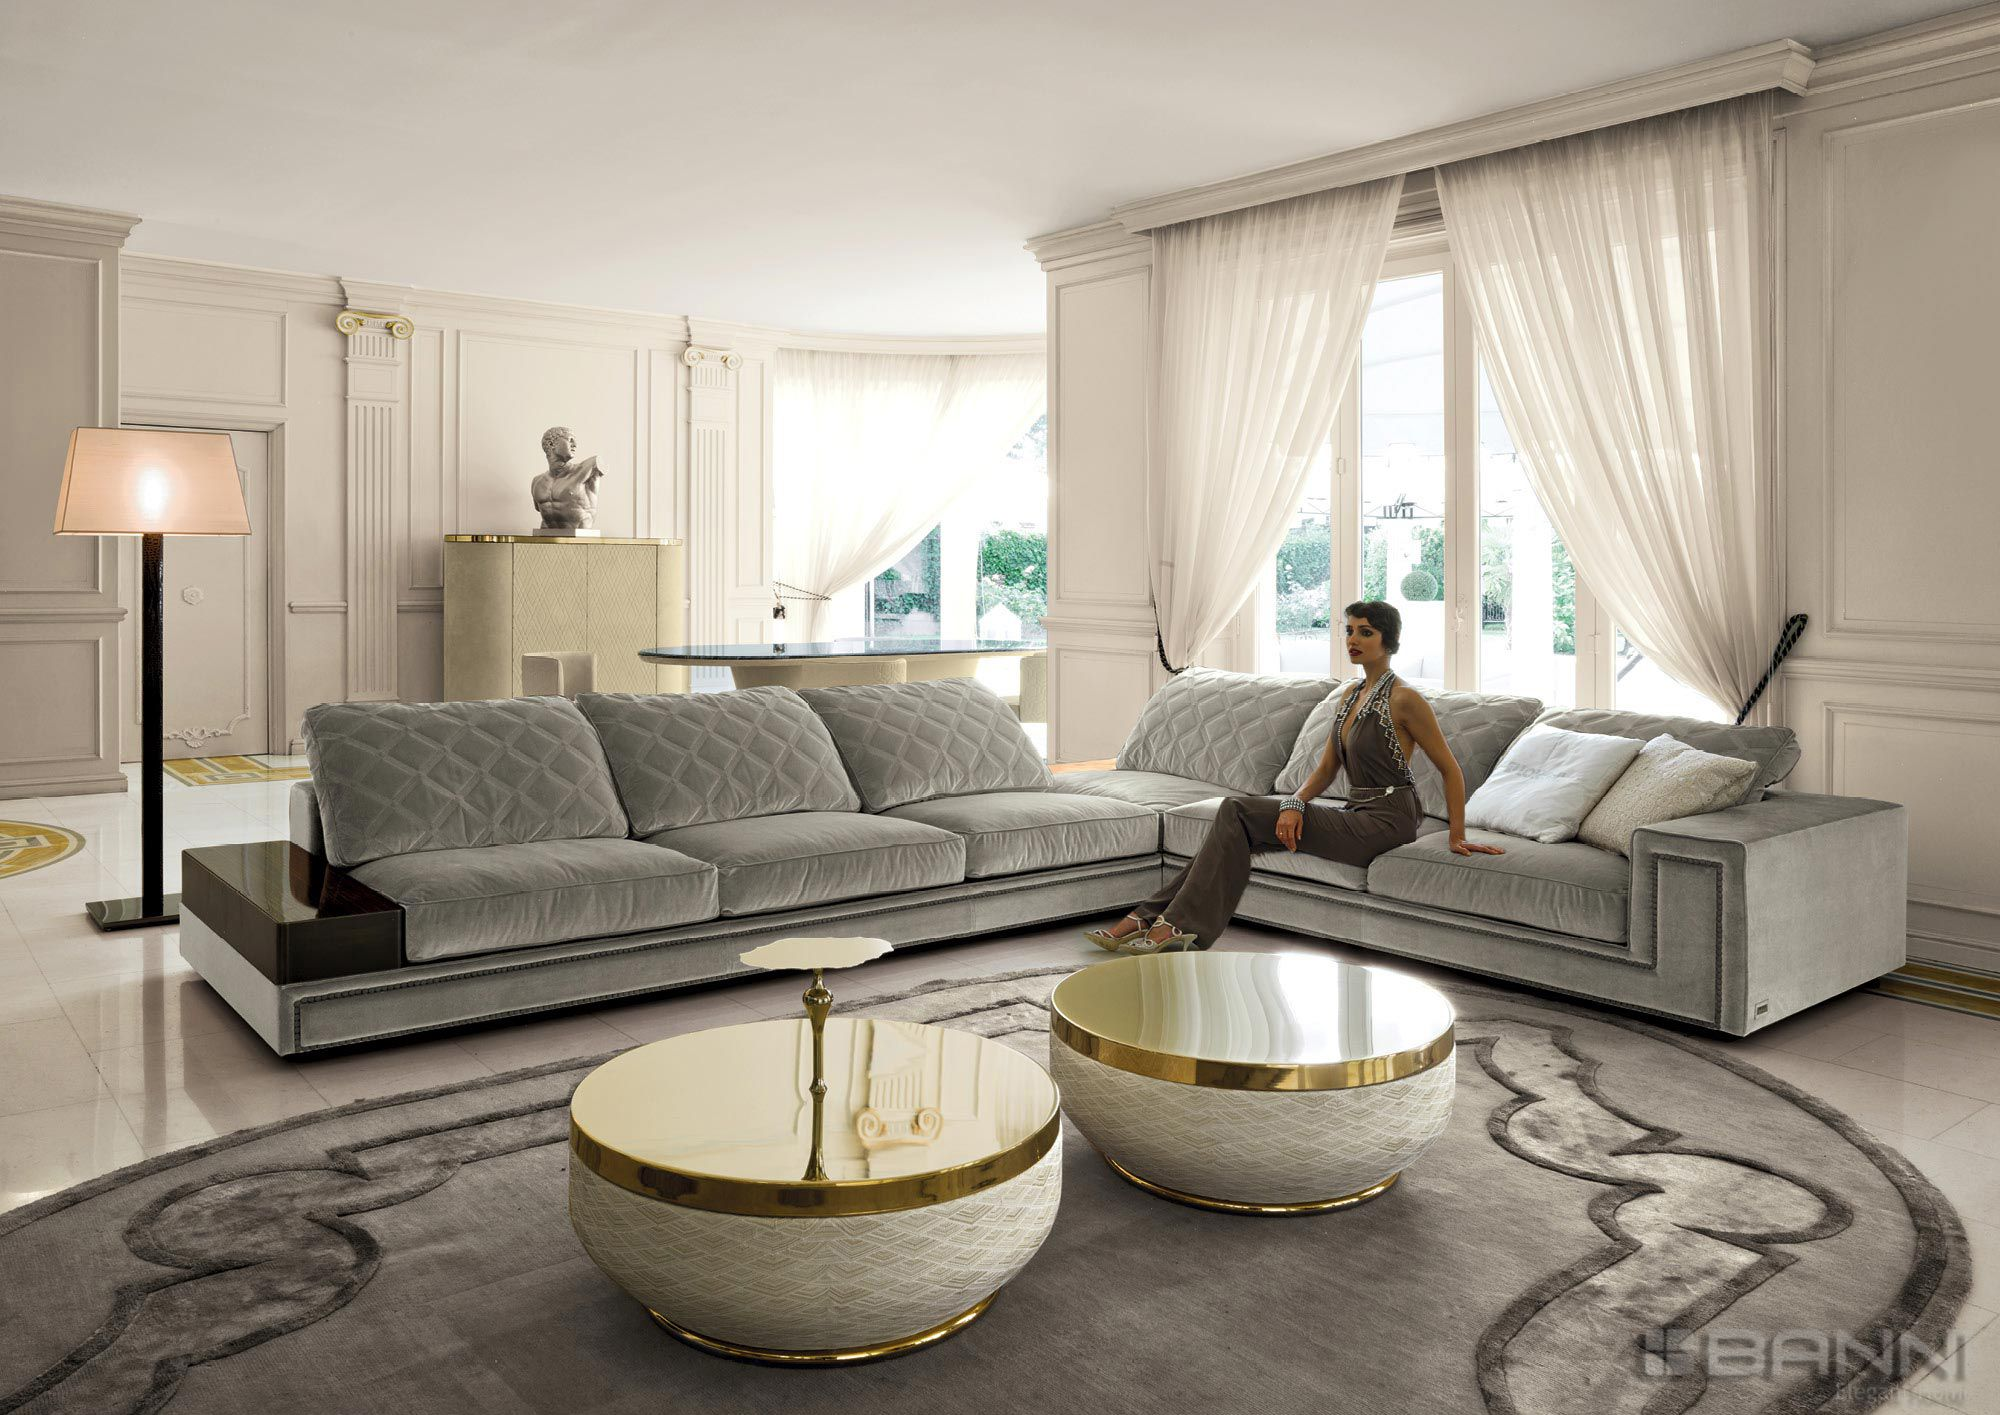 Helmut  Designer Sofas From Longhi S All Information High Resolution